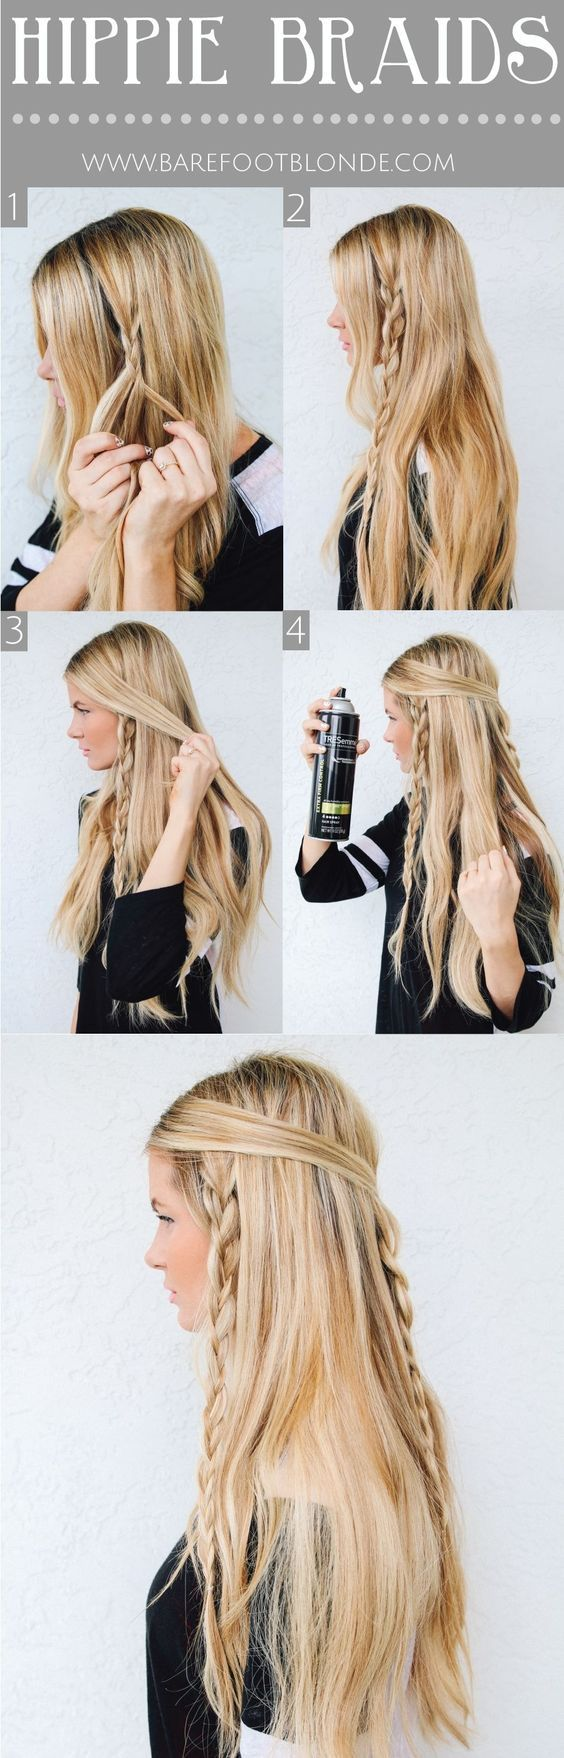 best long hair ideas images on pinterest cute hairstyles